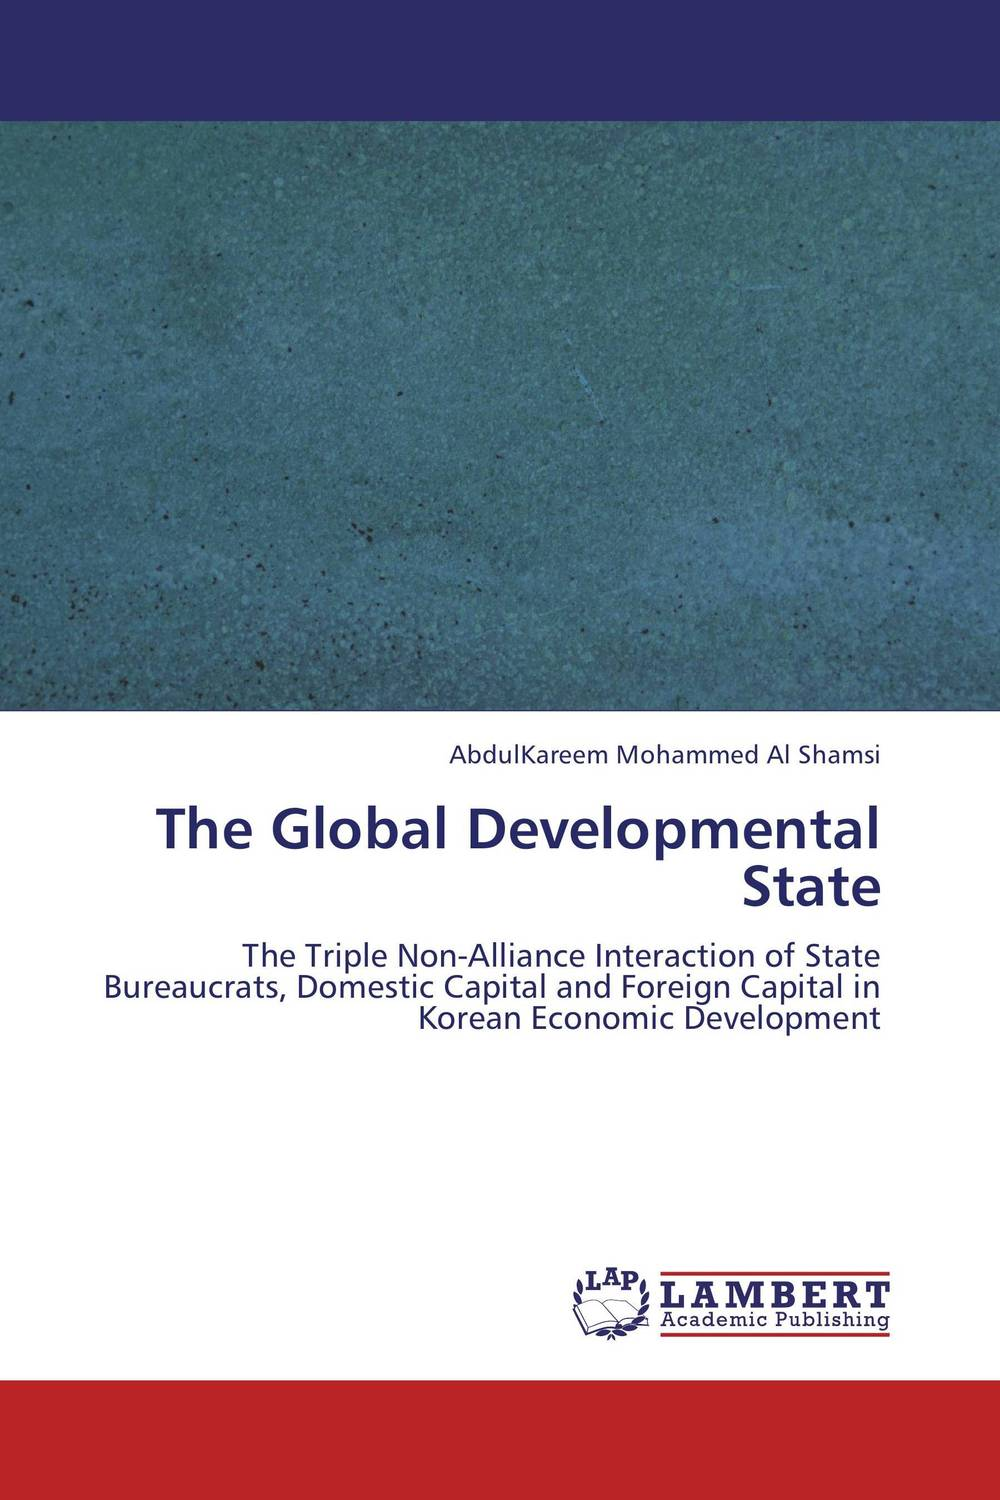 The Global Developmental State